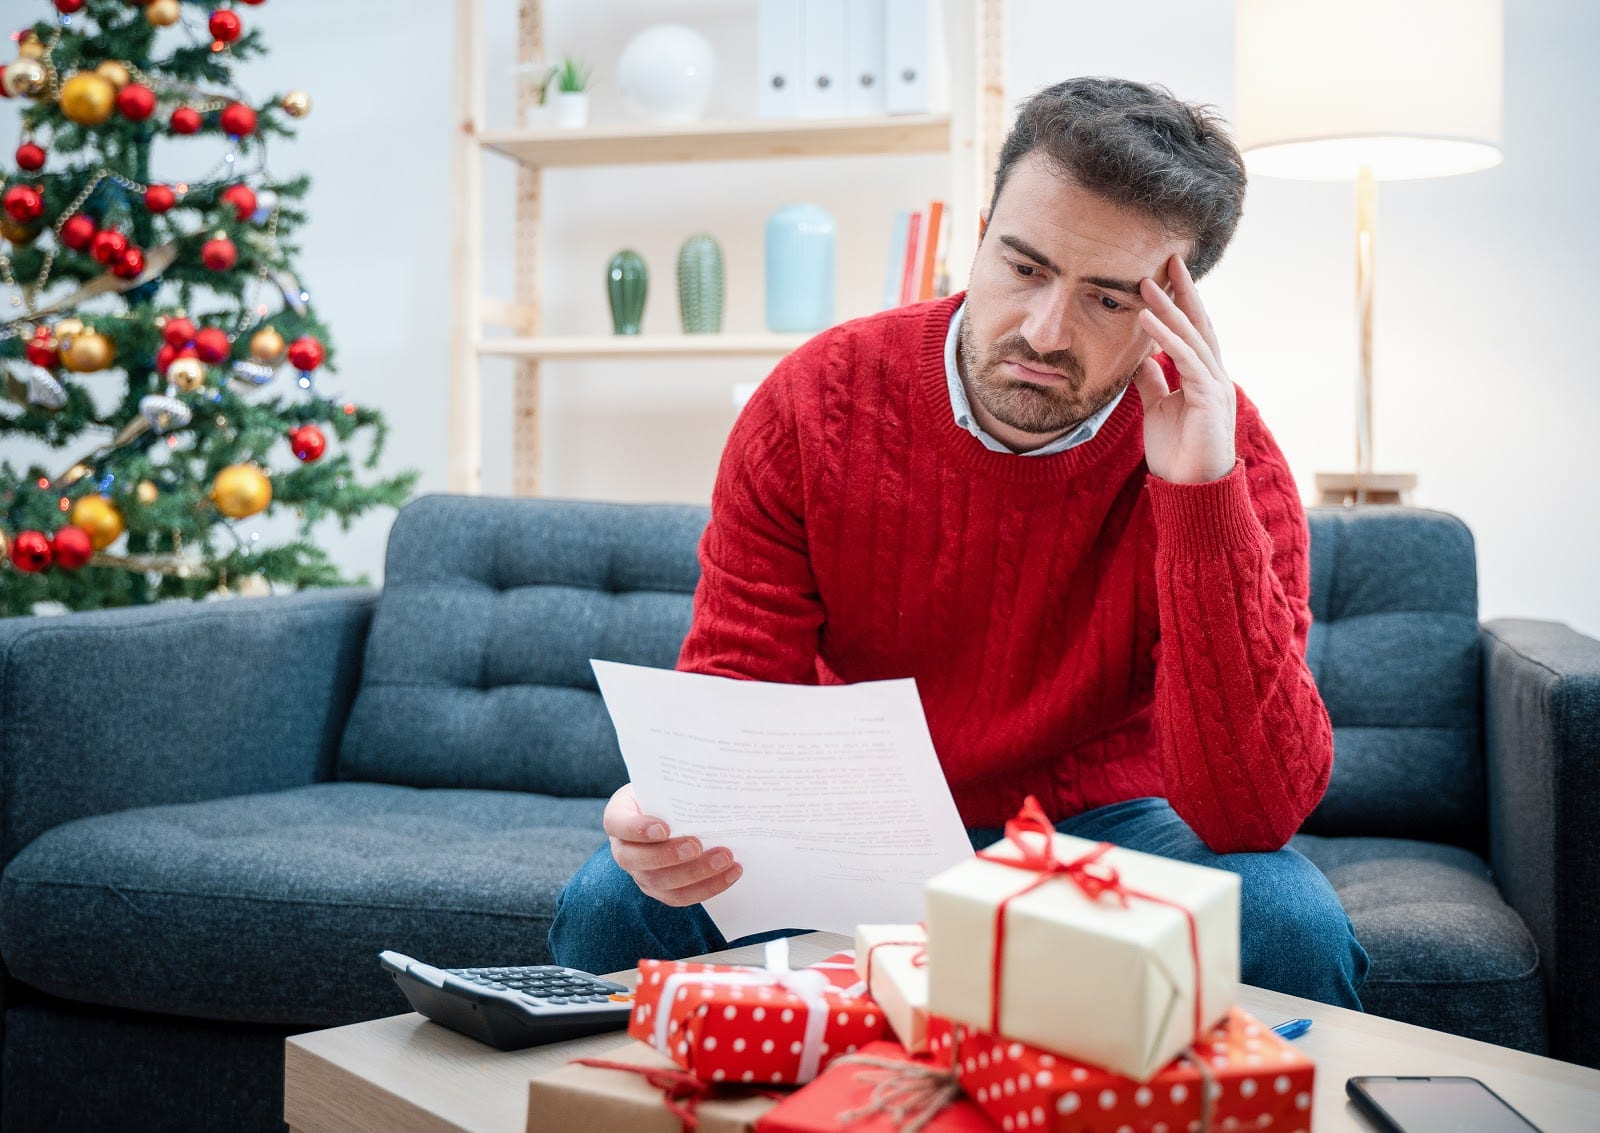 man stressed during the holiday season